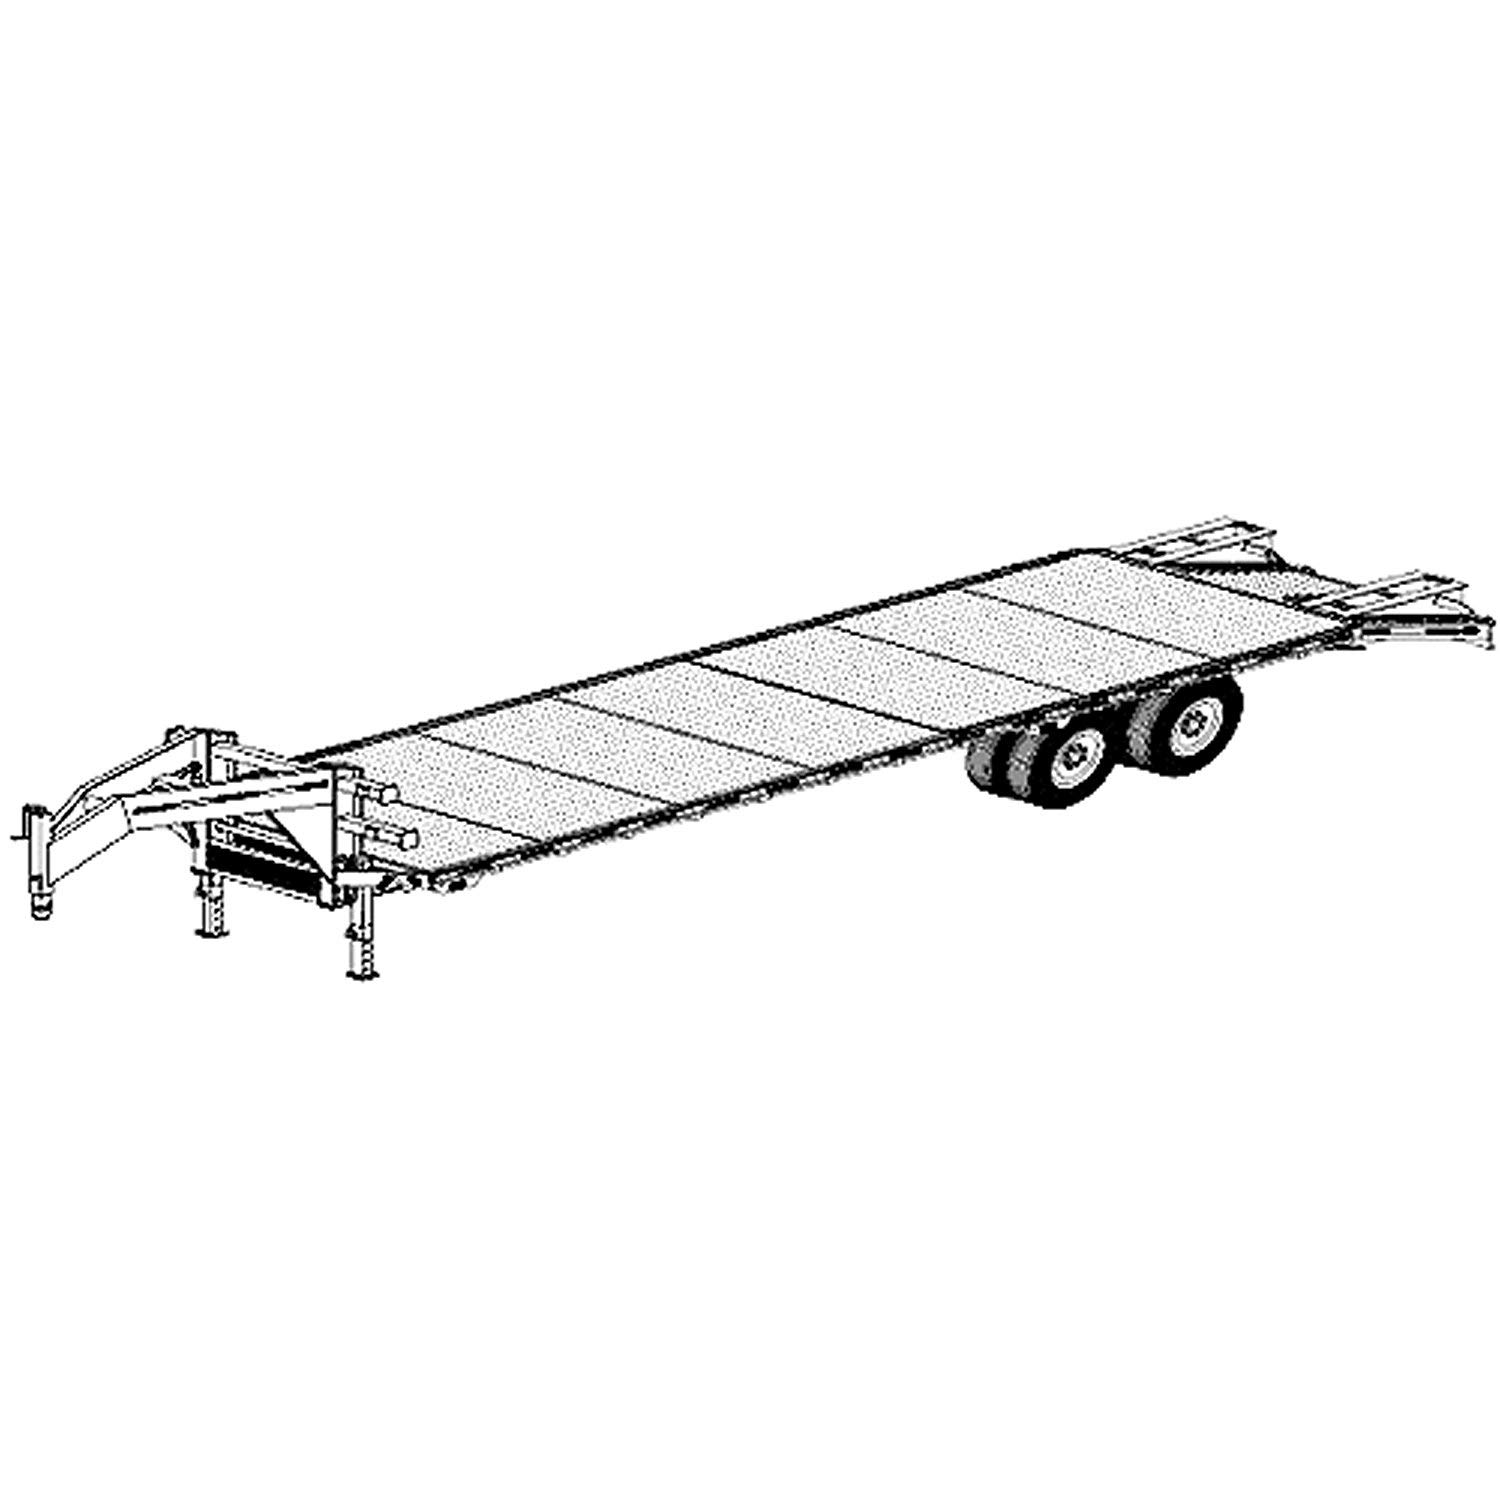 Flat Deck Trailer >> 32 X 102 Gooseneck Flat Deck Trailer Plans Blueprints Model 5232